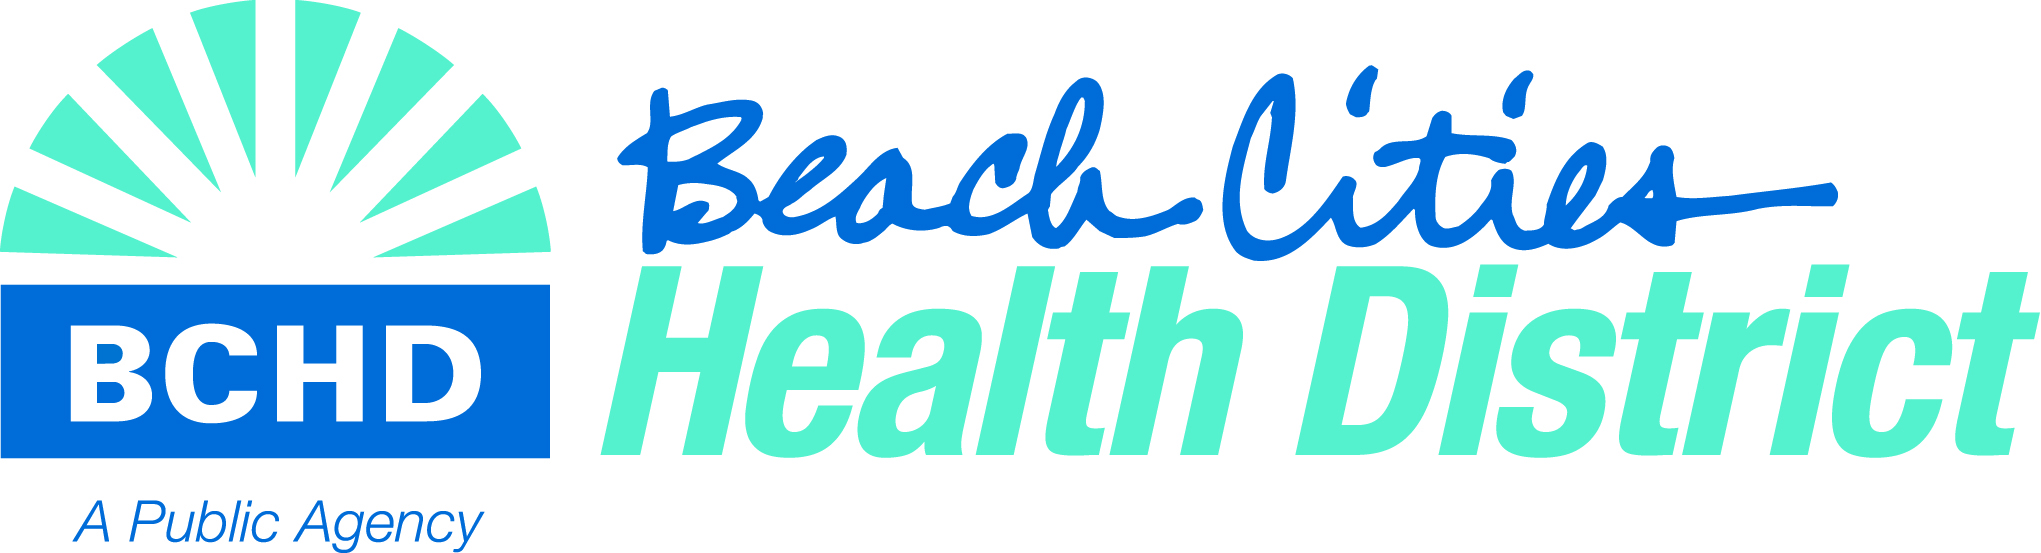 Image result for Beach Cities HEalth district logo images